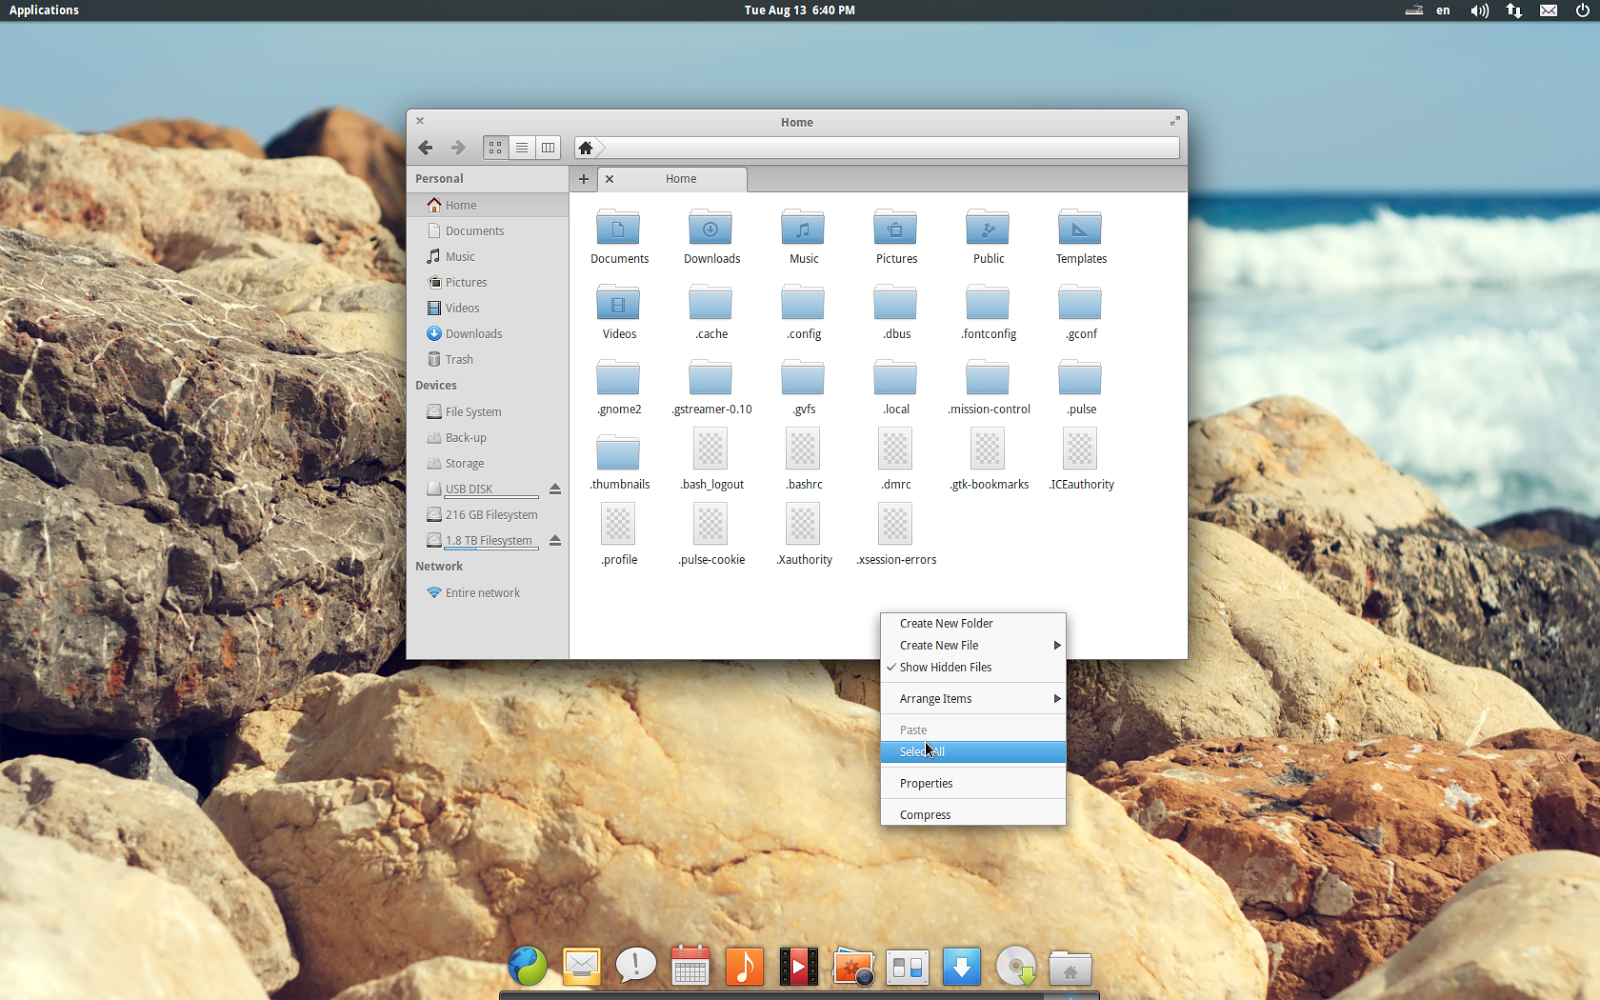 jfn linux project: 2013